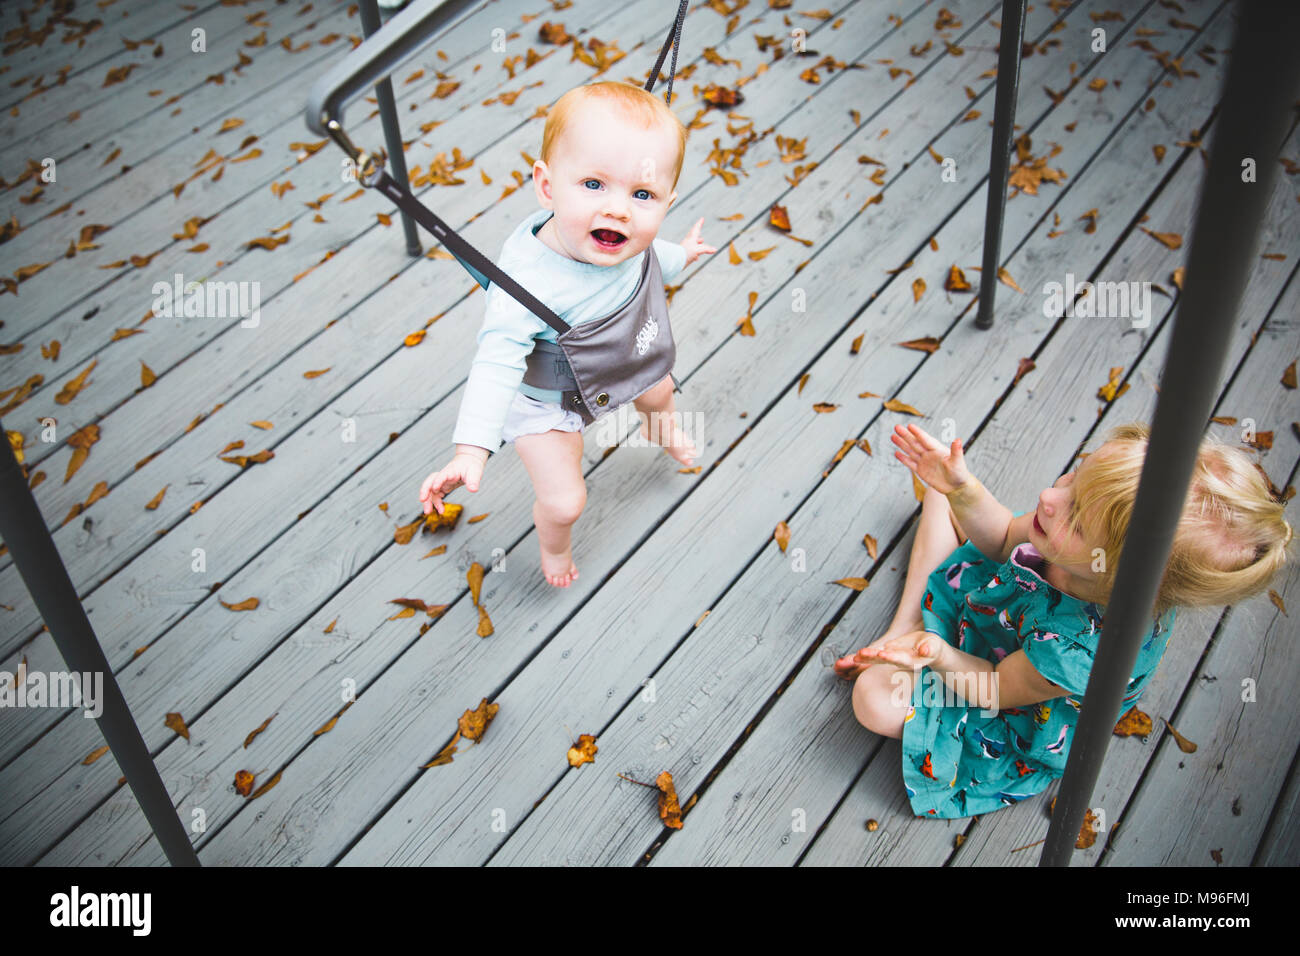 Baby smiling and jumping with girl watching - Stock Image